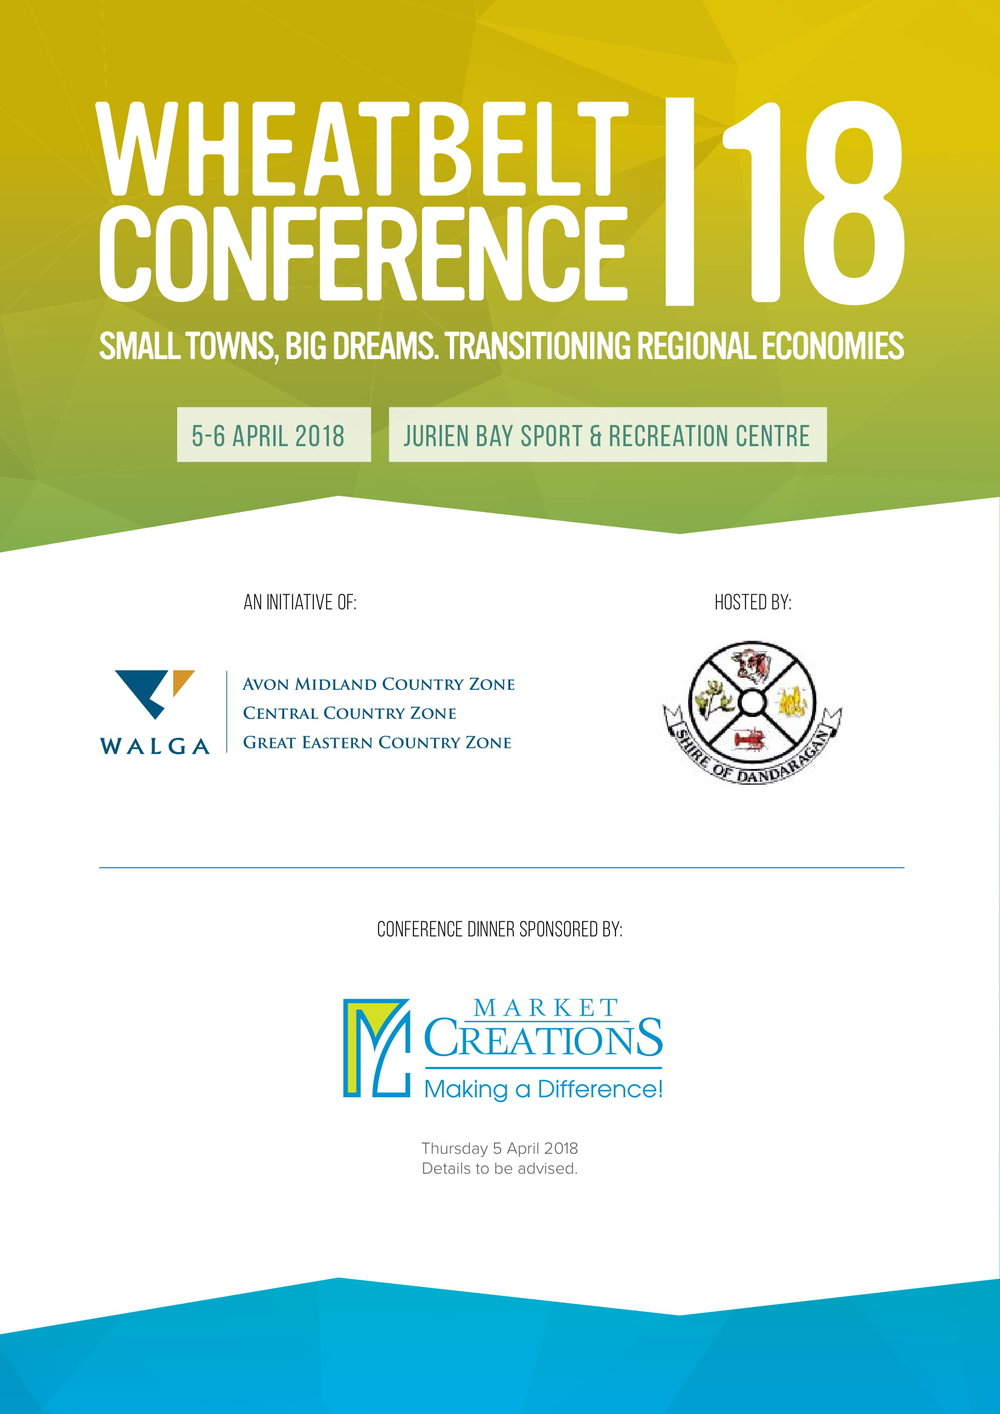 Wheatbelt 18 - Conference Program-7.jpg